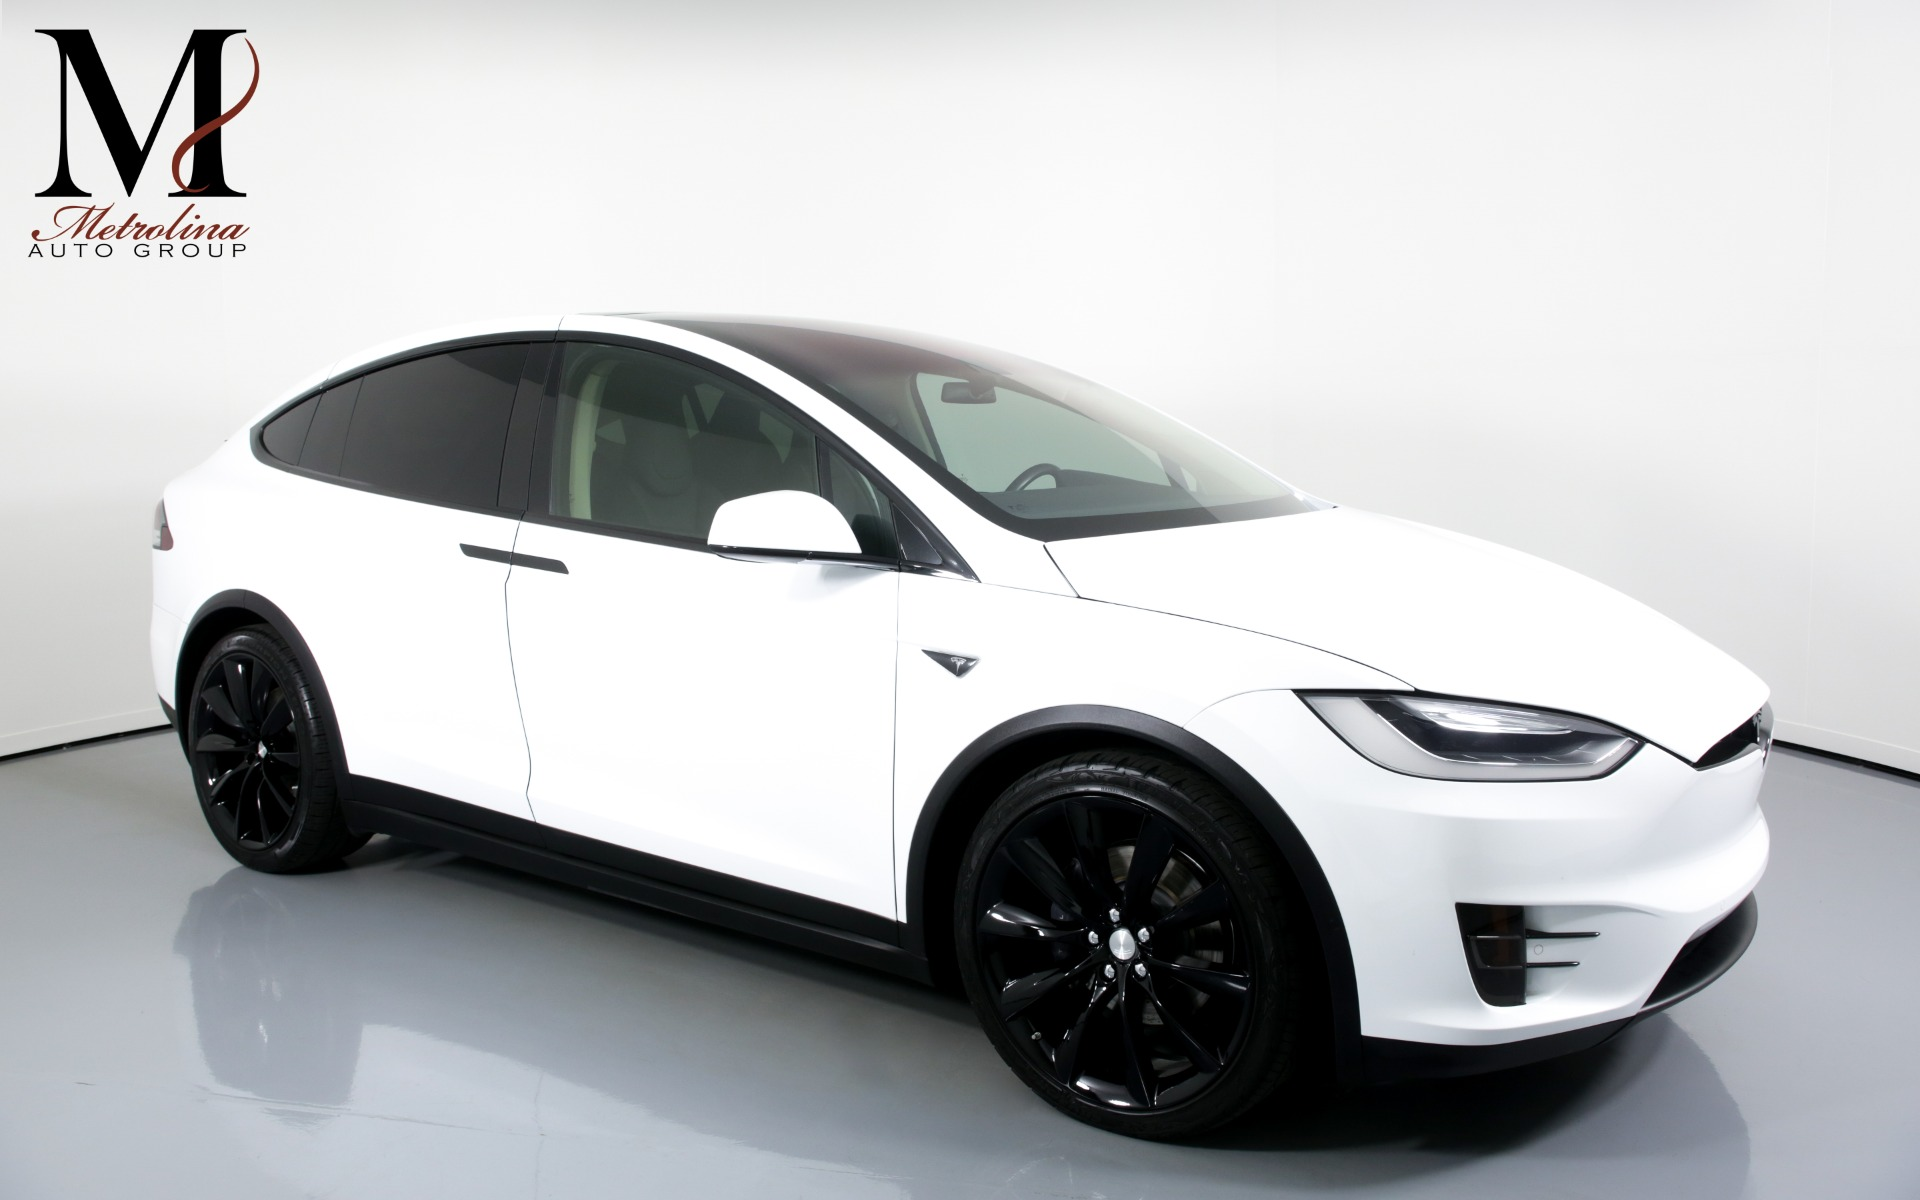 Used 2016 Tesla Model X 75D AWD 4dr SUV for sale $69,996 at Metrolina Auto Group in Charlotte NC 28217 - 1